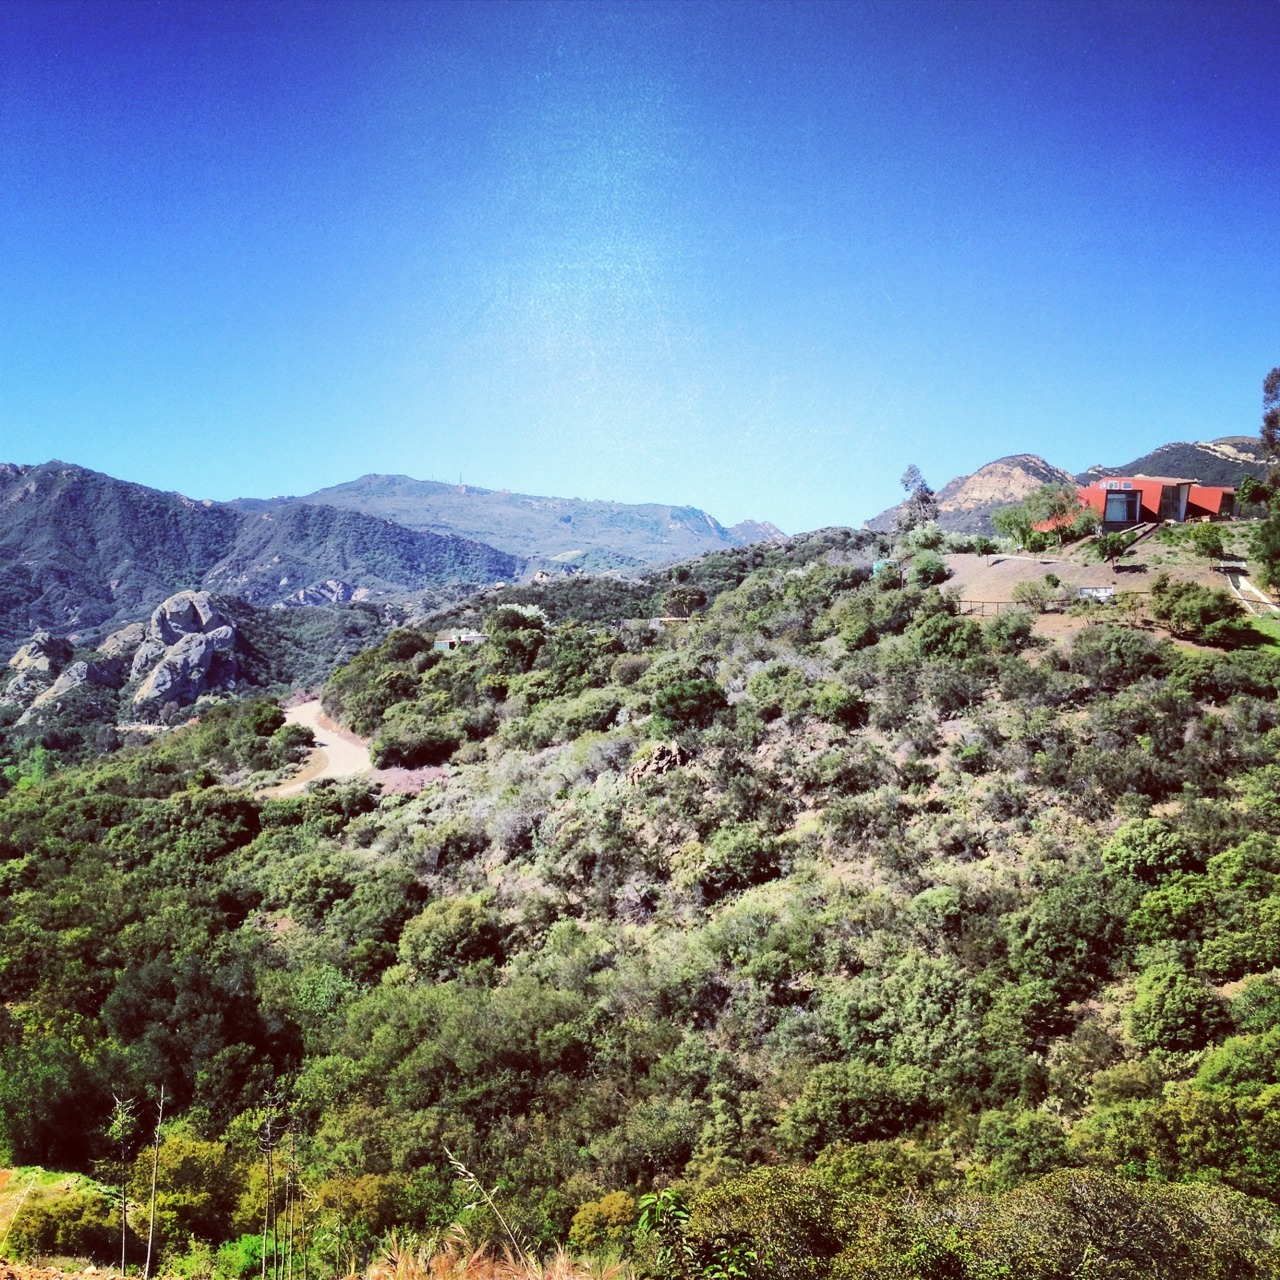 Topanga Canyon Road